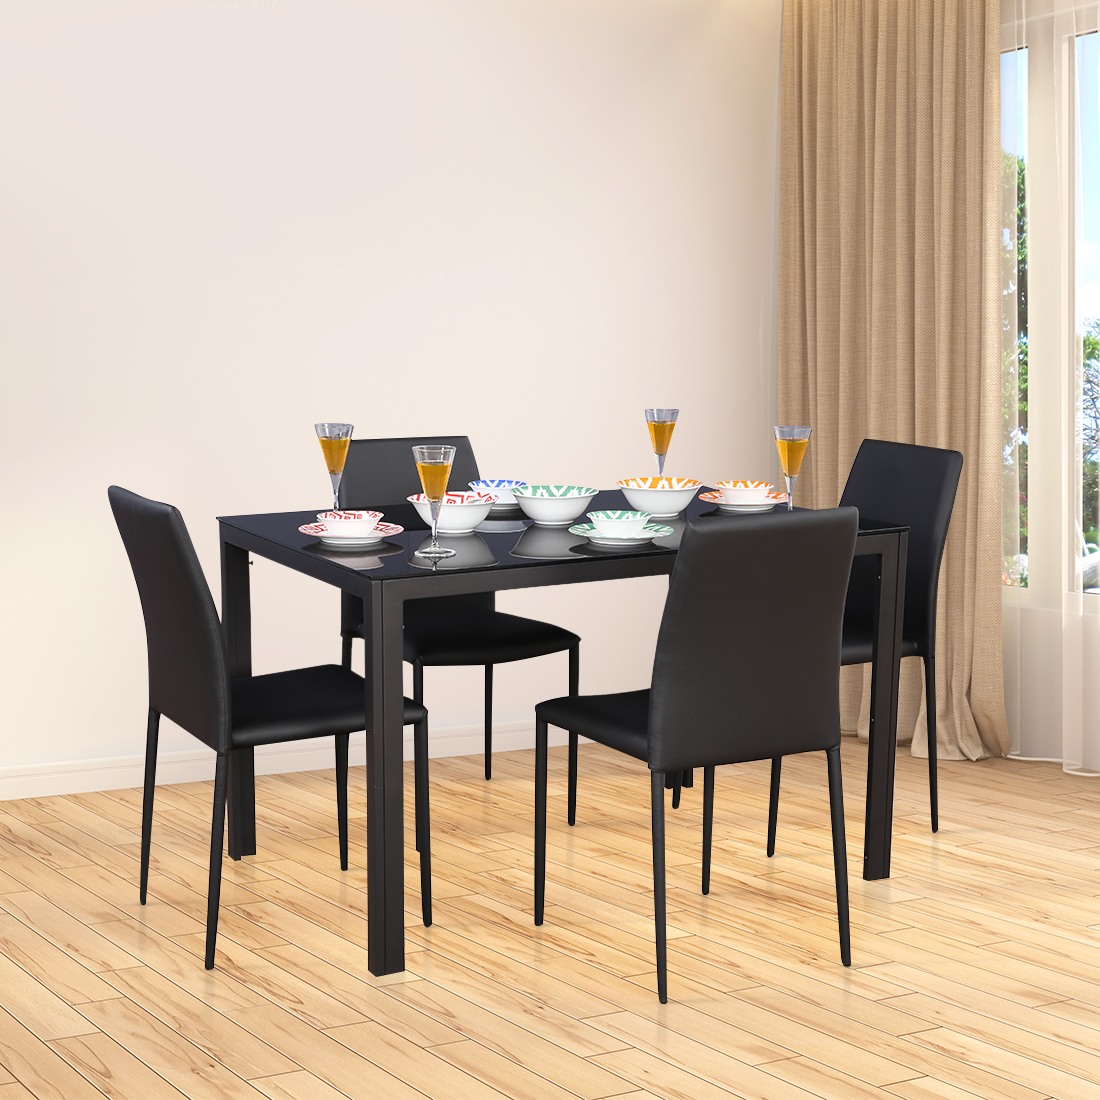 Modric Mild Steel Four Seater Dining Set in Black Colour by HomeTown